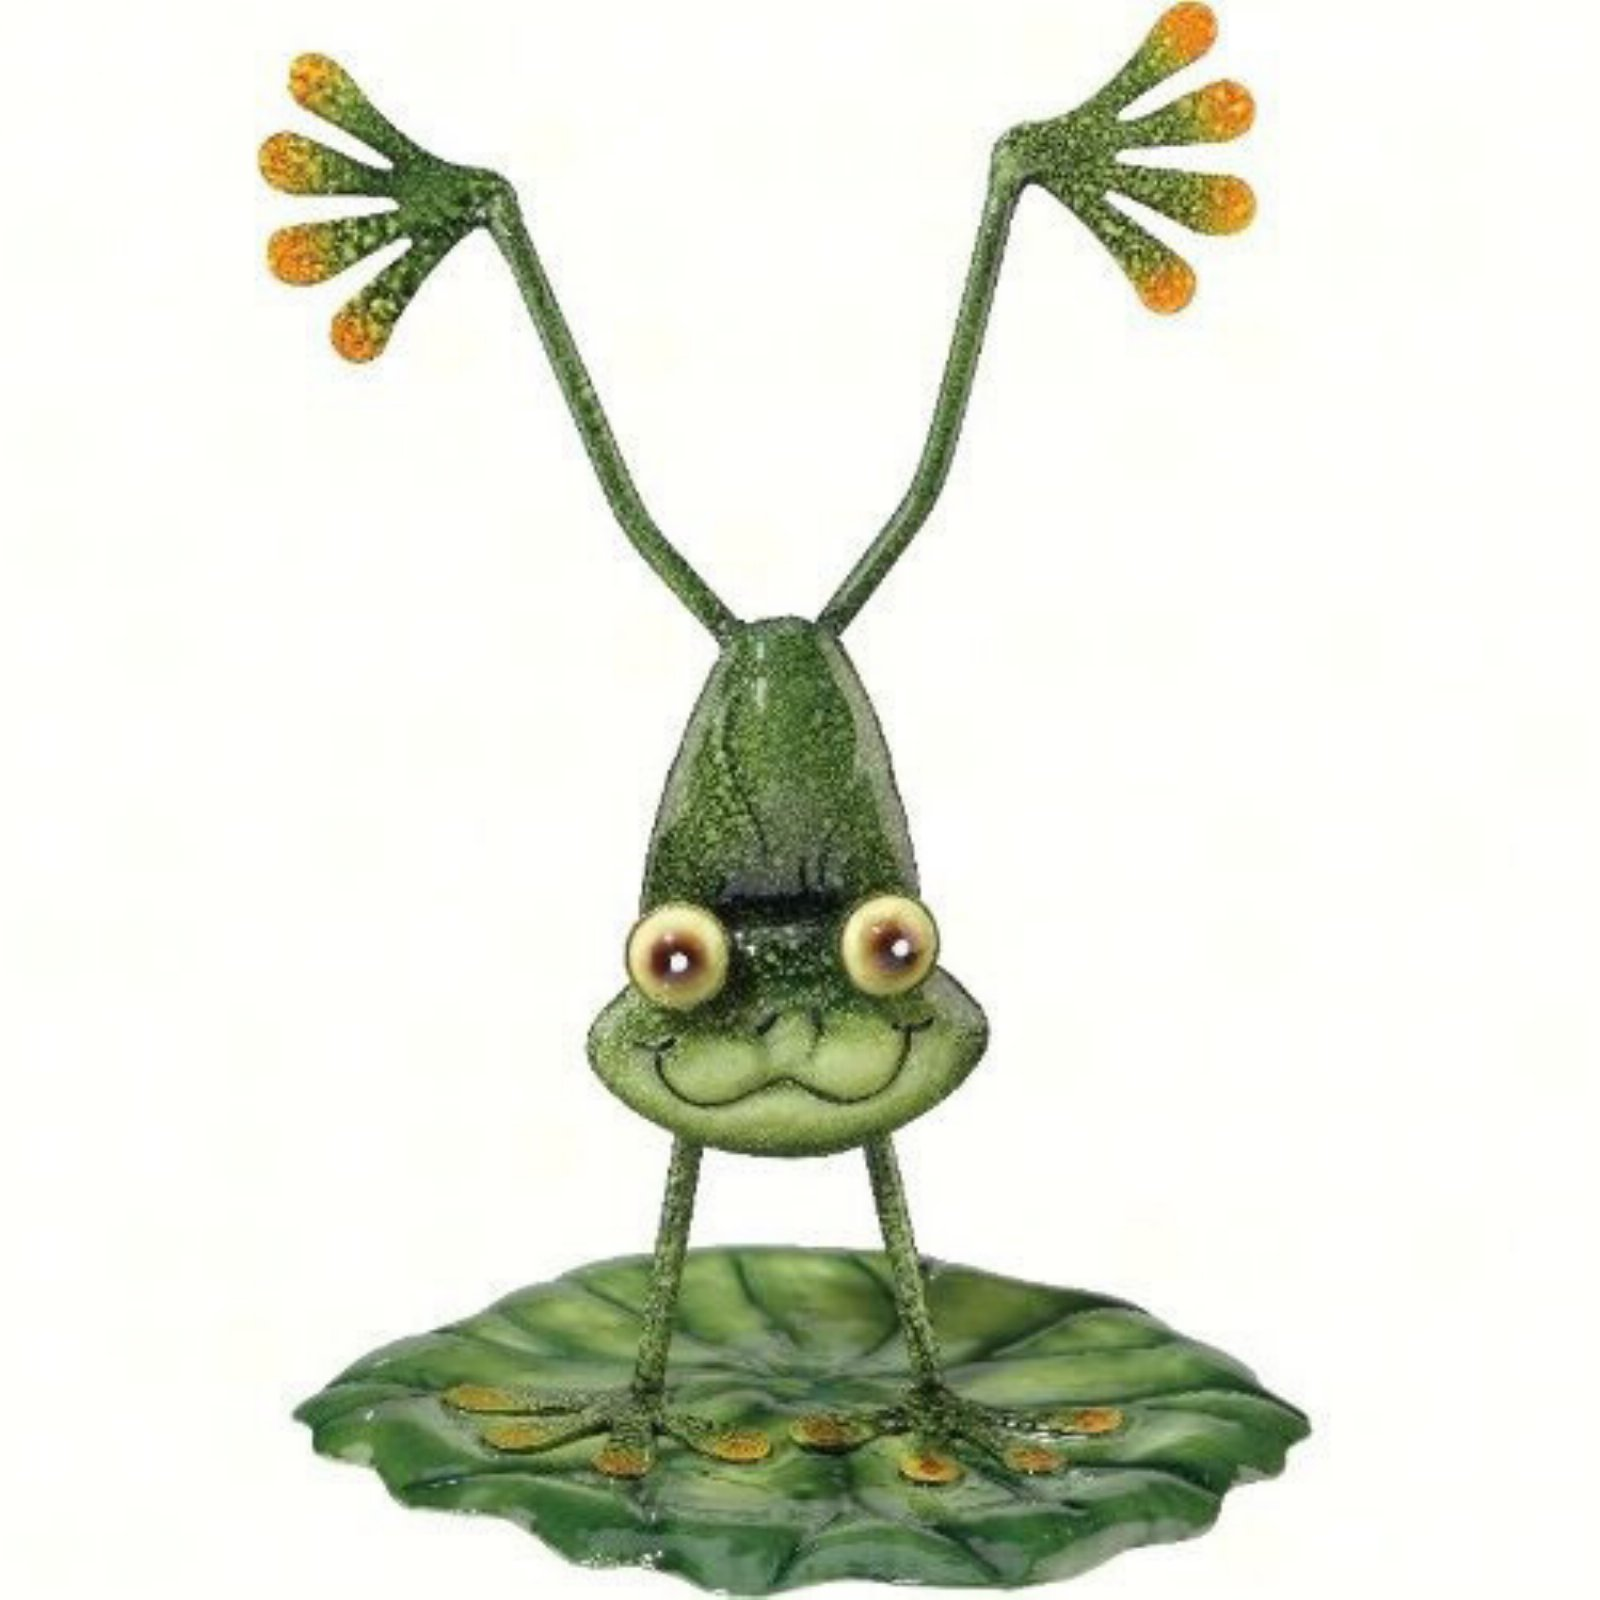 Regal Art and Gift Handstand Frog Garden Decor